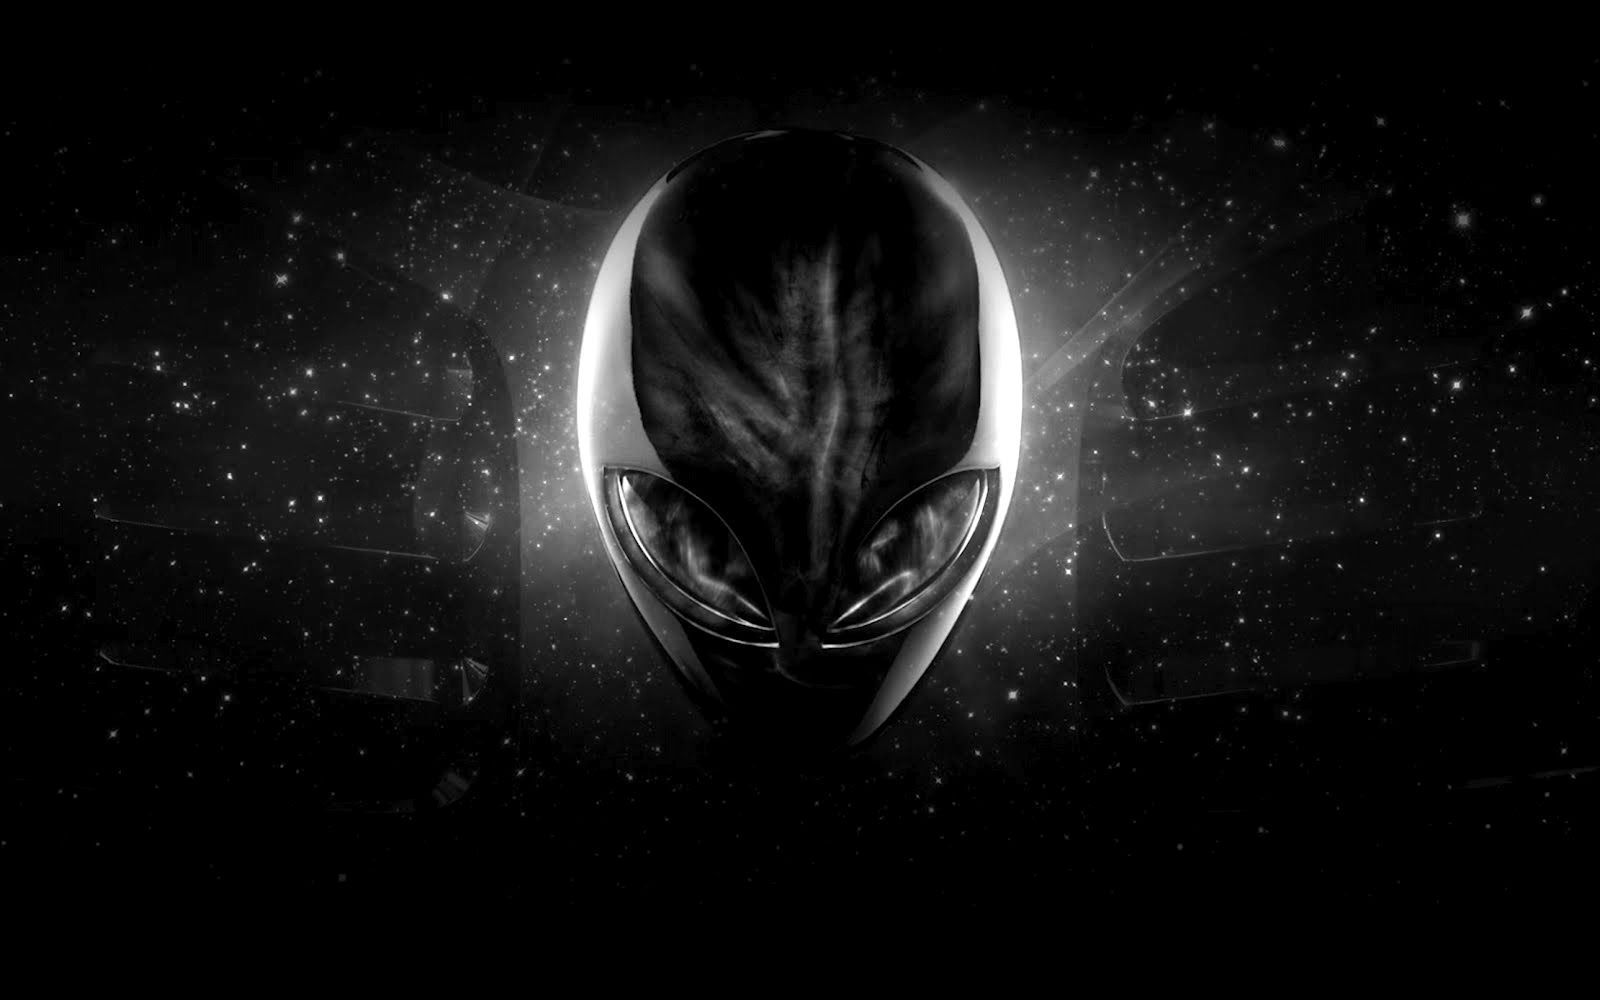 1600x1000 alien wallpaper Group with 57 items